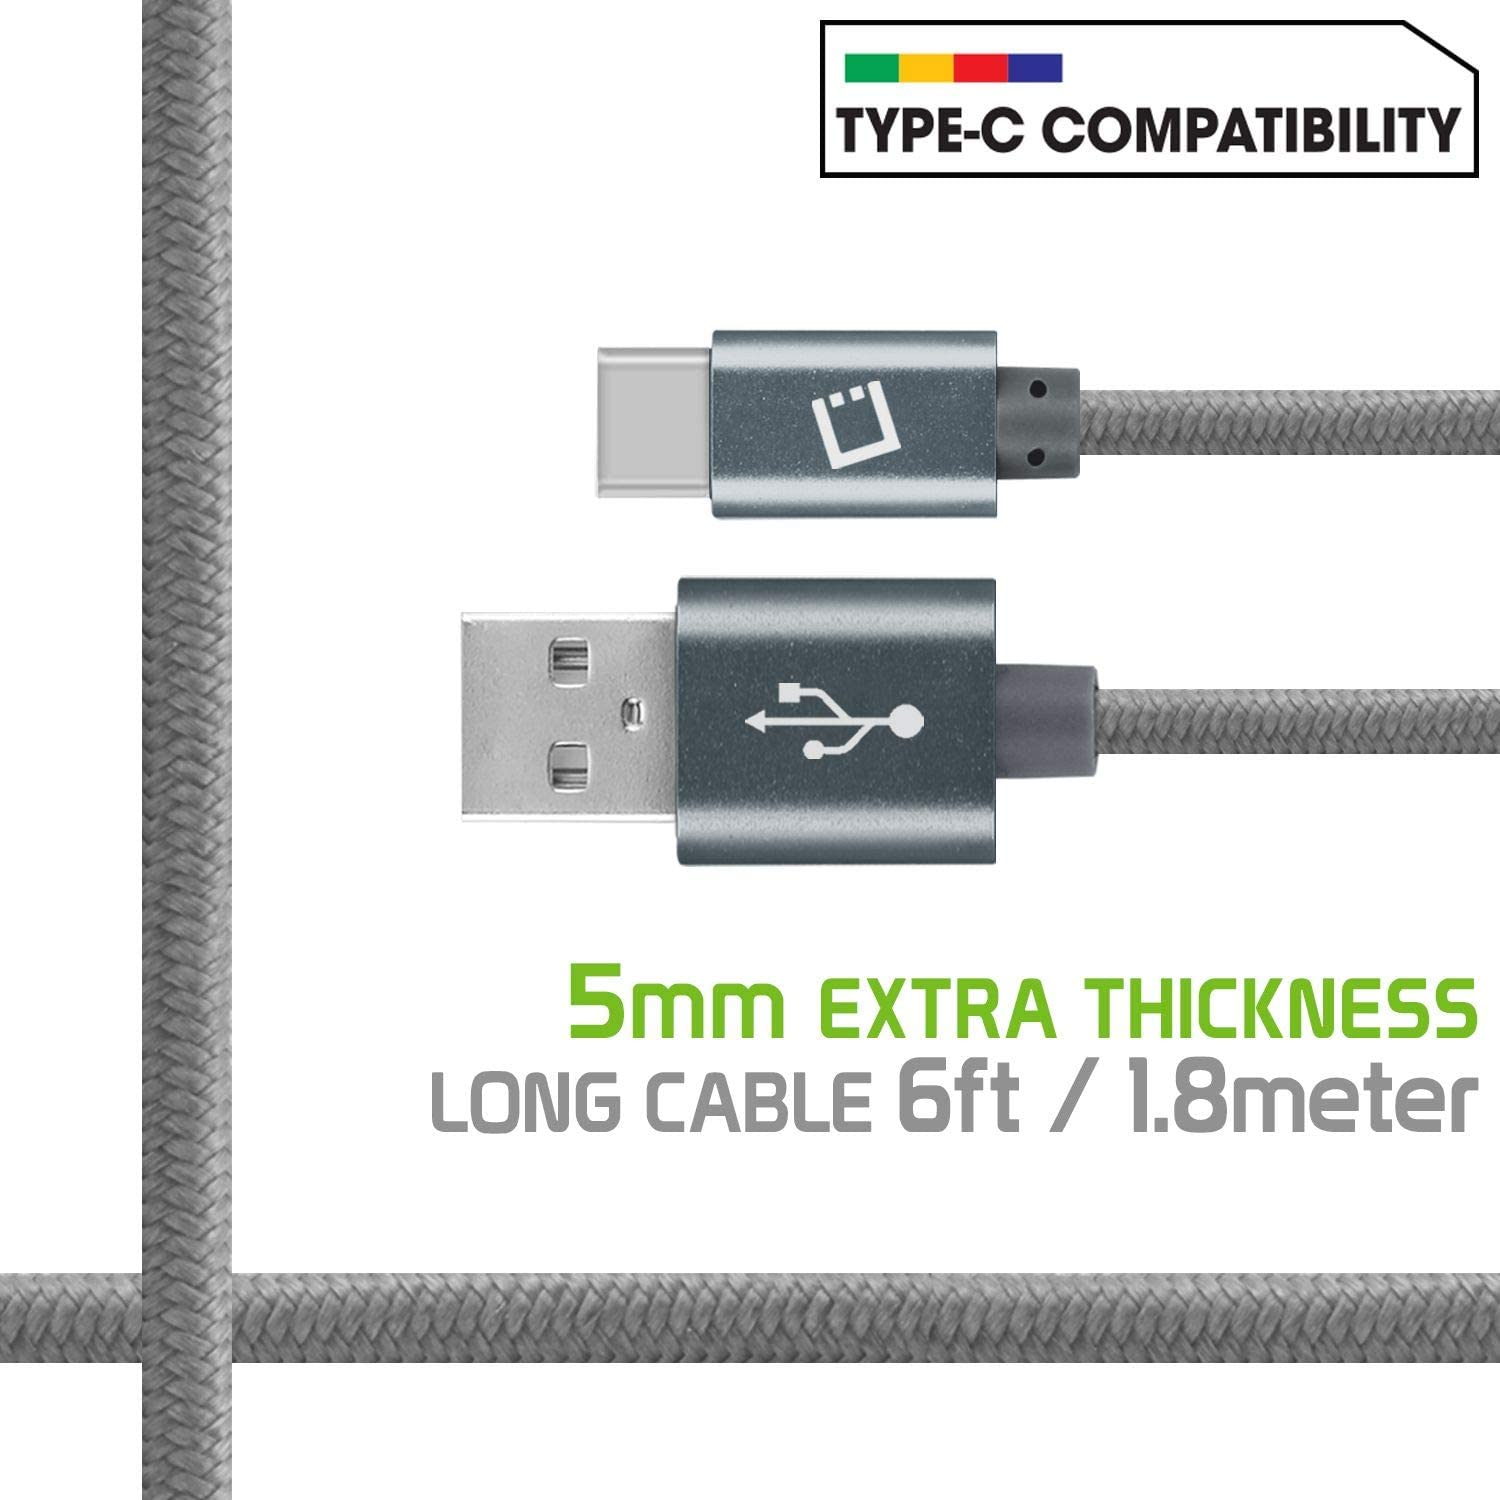 Cellet USB Cable Compatible with Cricket Influence USB-C to USB-A Fast Charging Sync Cable 6 feet//1.8 Meters Heavy Duty Braided USB Type C